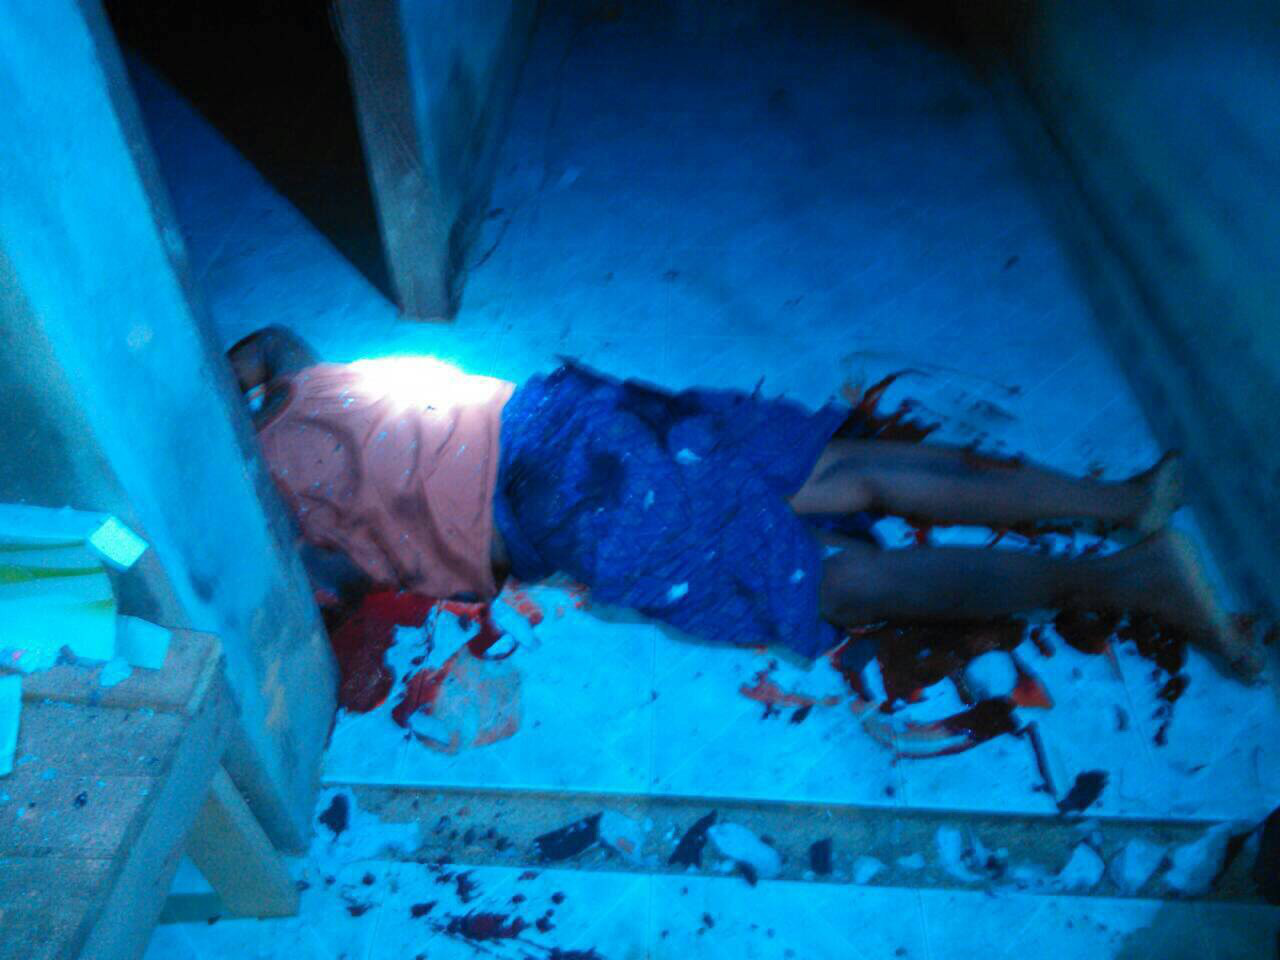 Eight Die in Two-Day Spate of Violence in Thailand's Deep ...